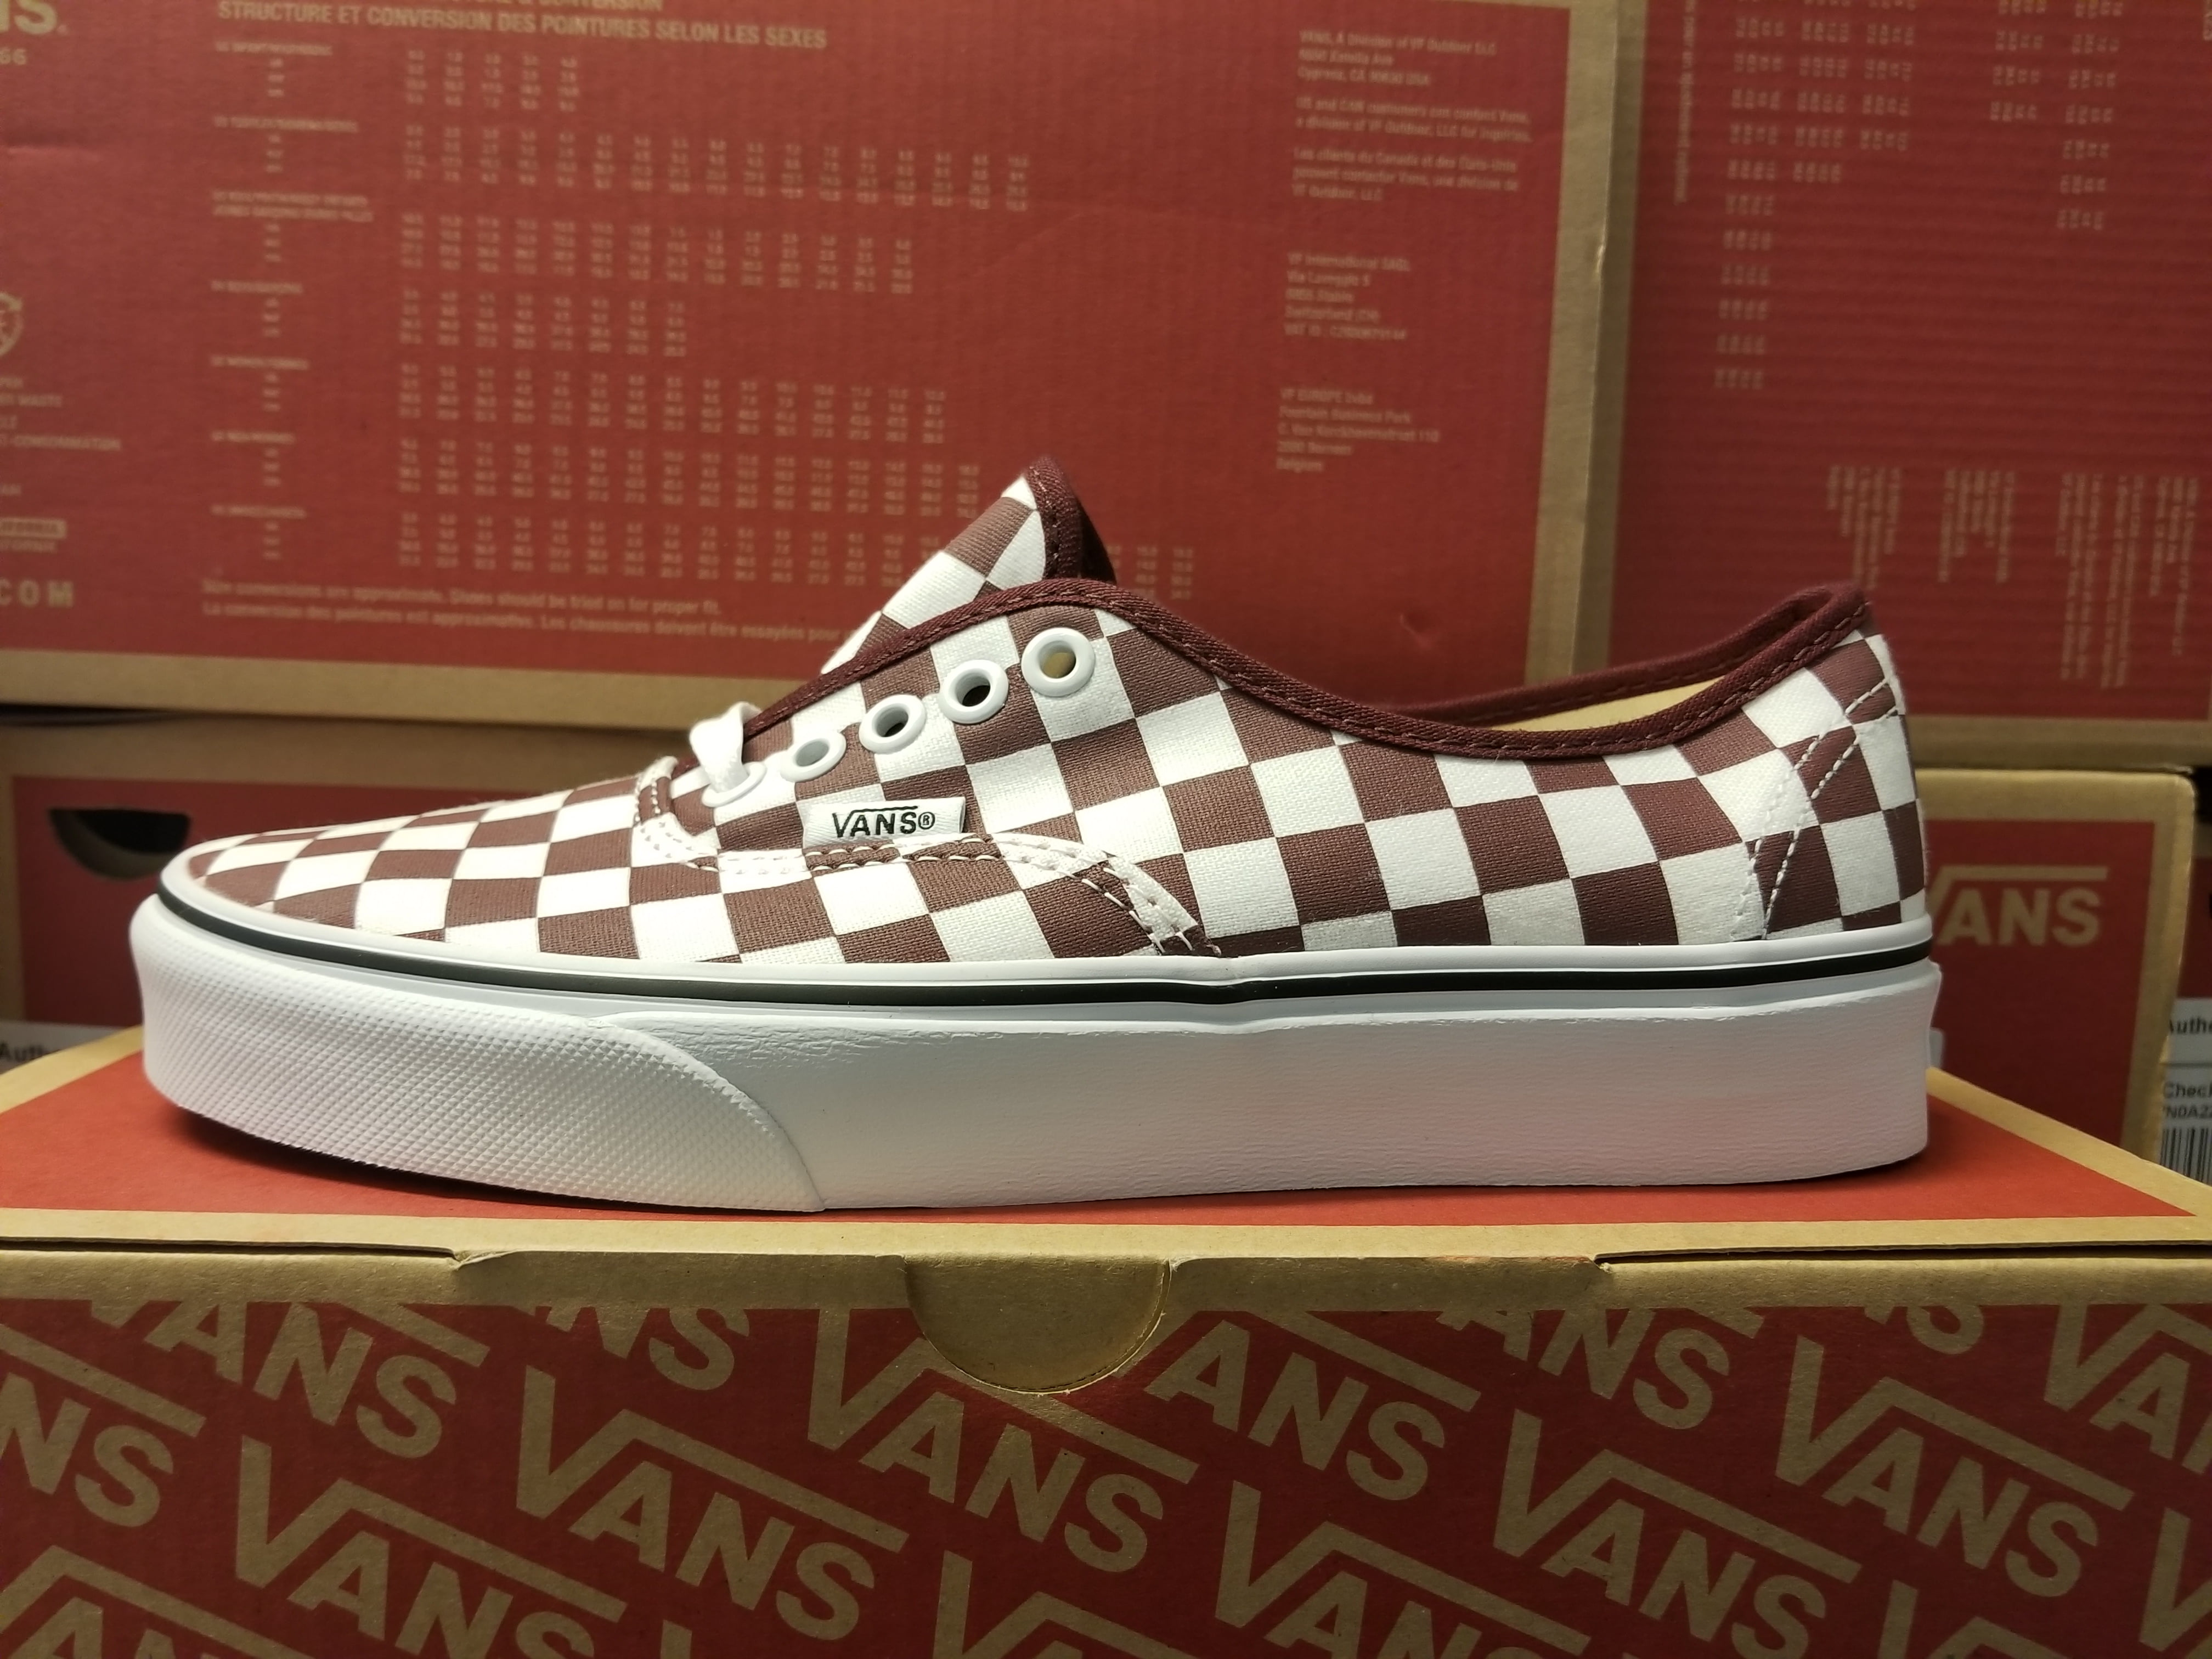 Vans Authentic Checkerboard Port Royale/White Women's Skate Shoes Size 7.5